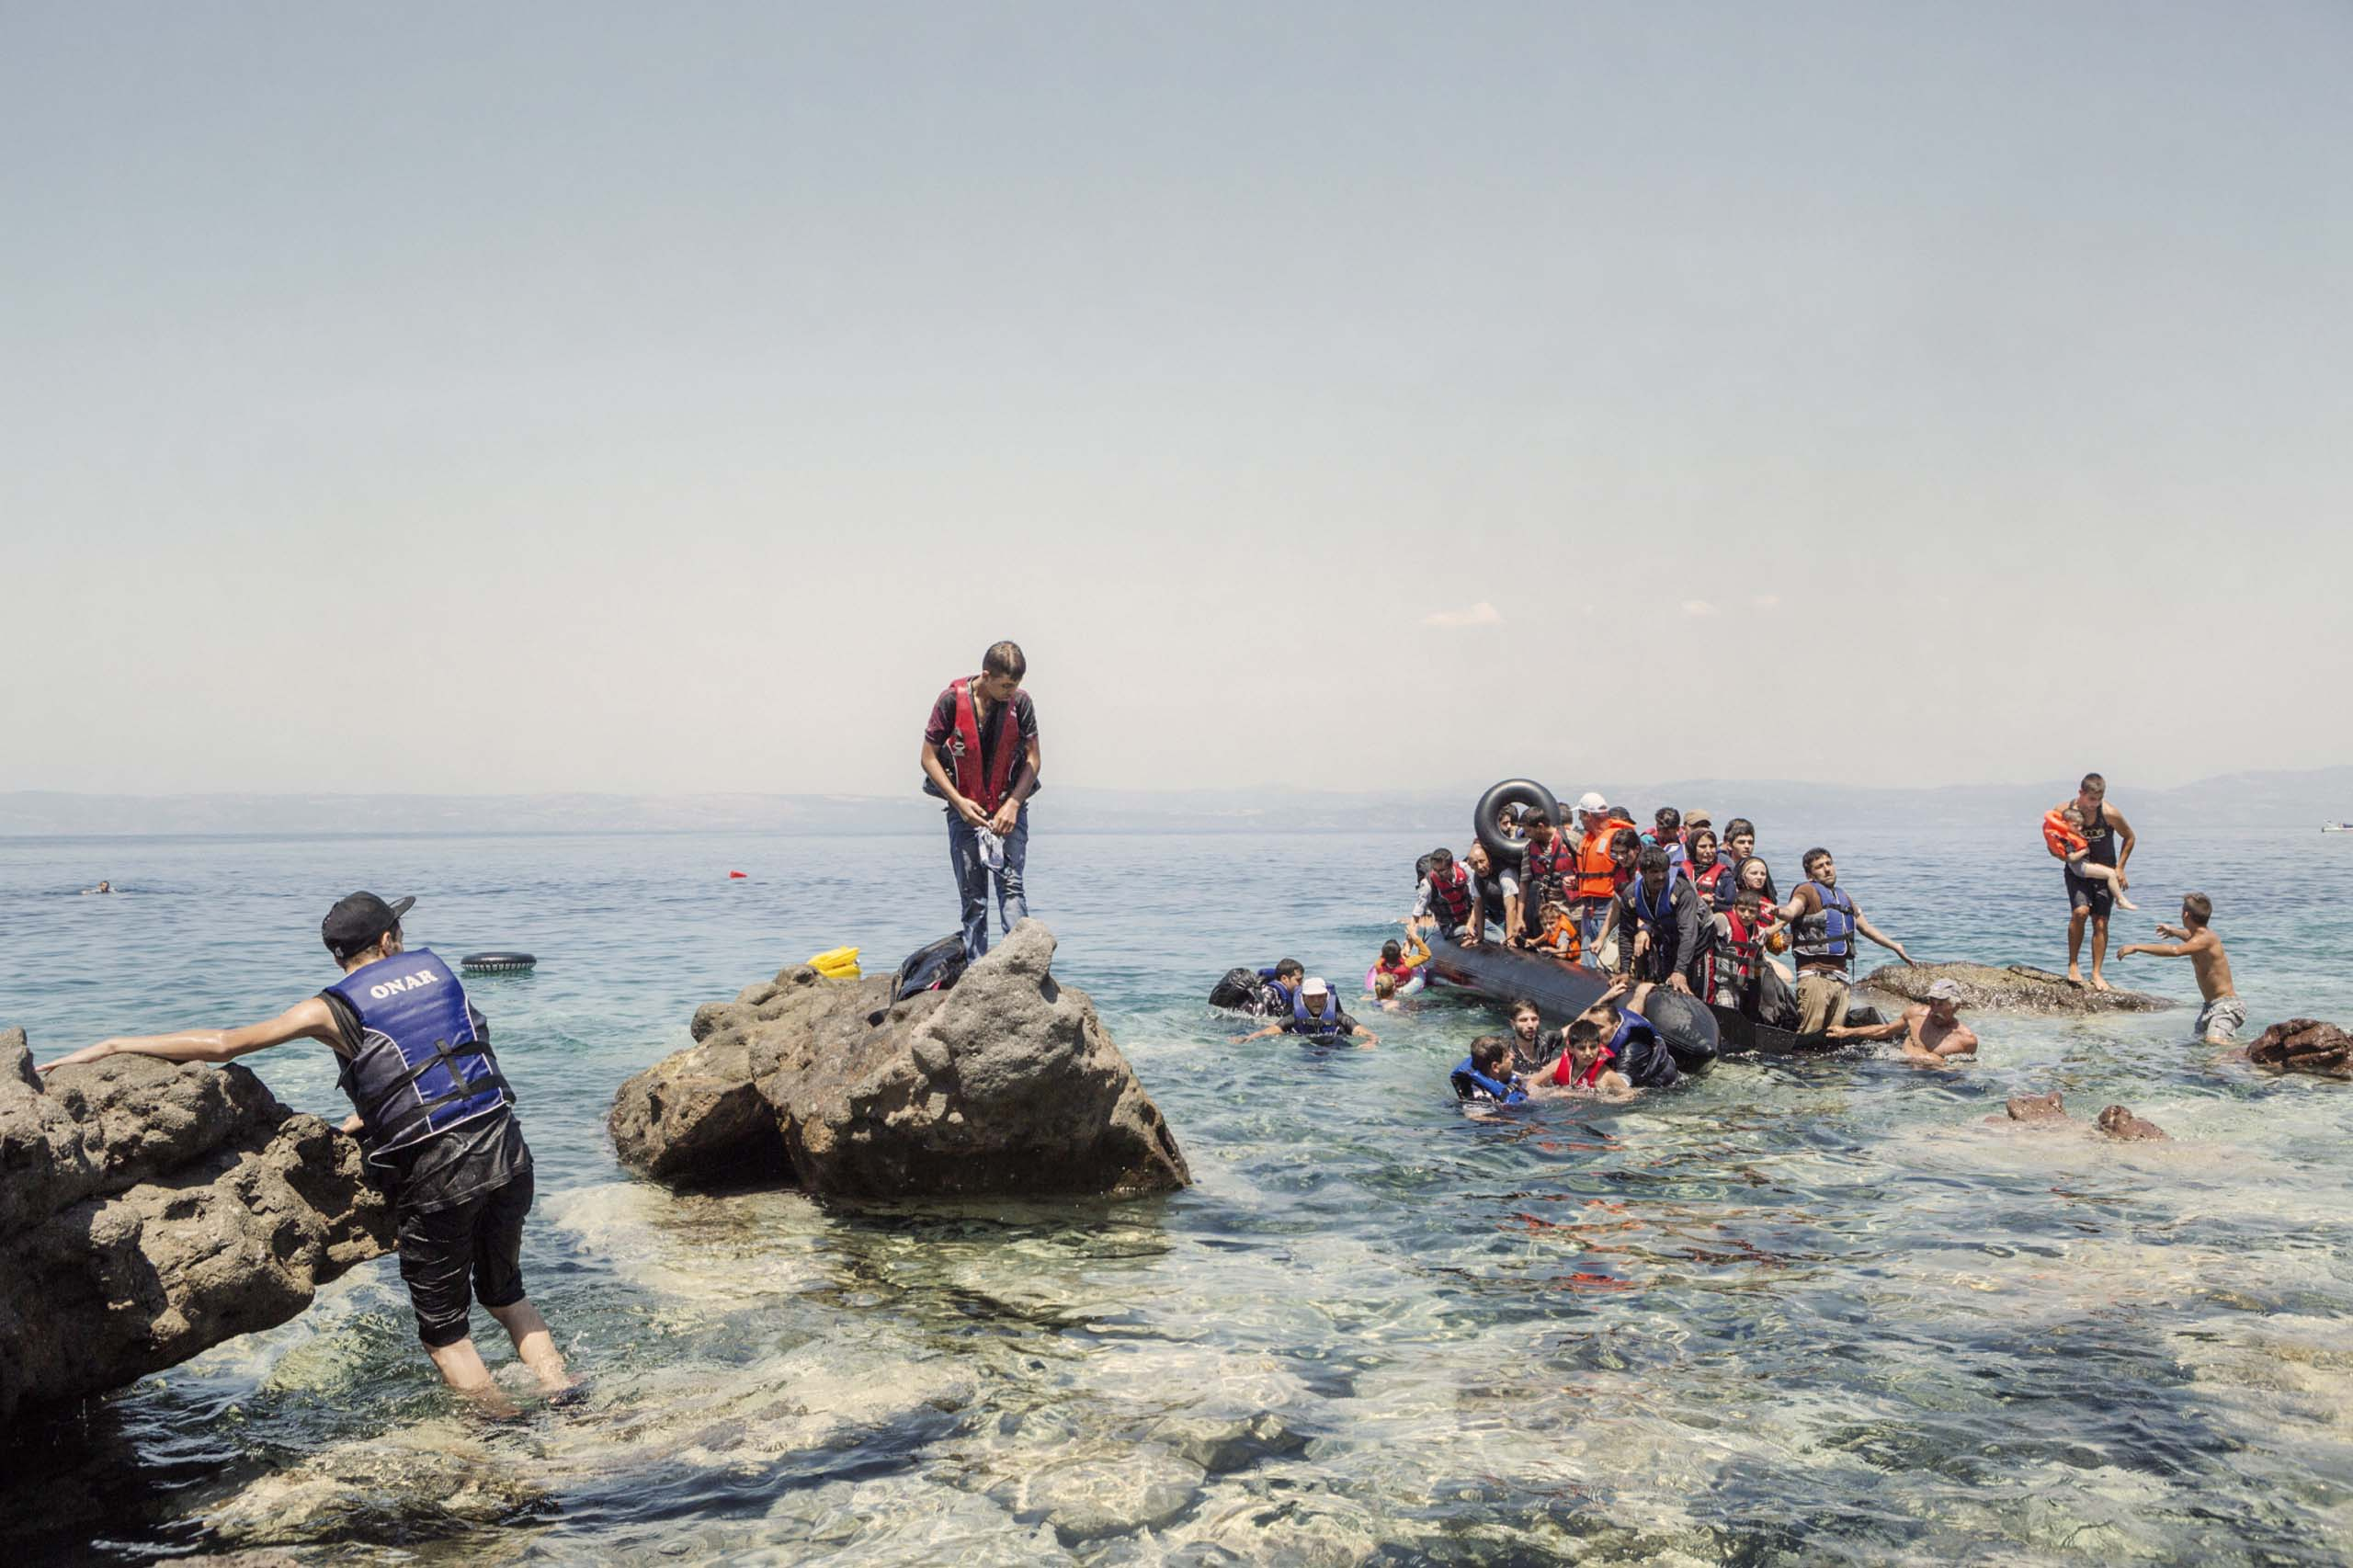 A boat carrying migrants is helped by locals on the Greek island of Lesbos. The boat started to leak, forcing the passengers to swim ashore, Aug. 5, 2015.